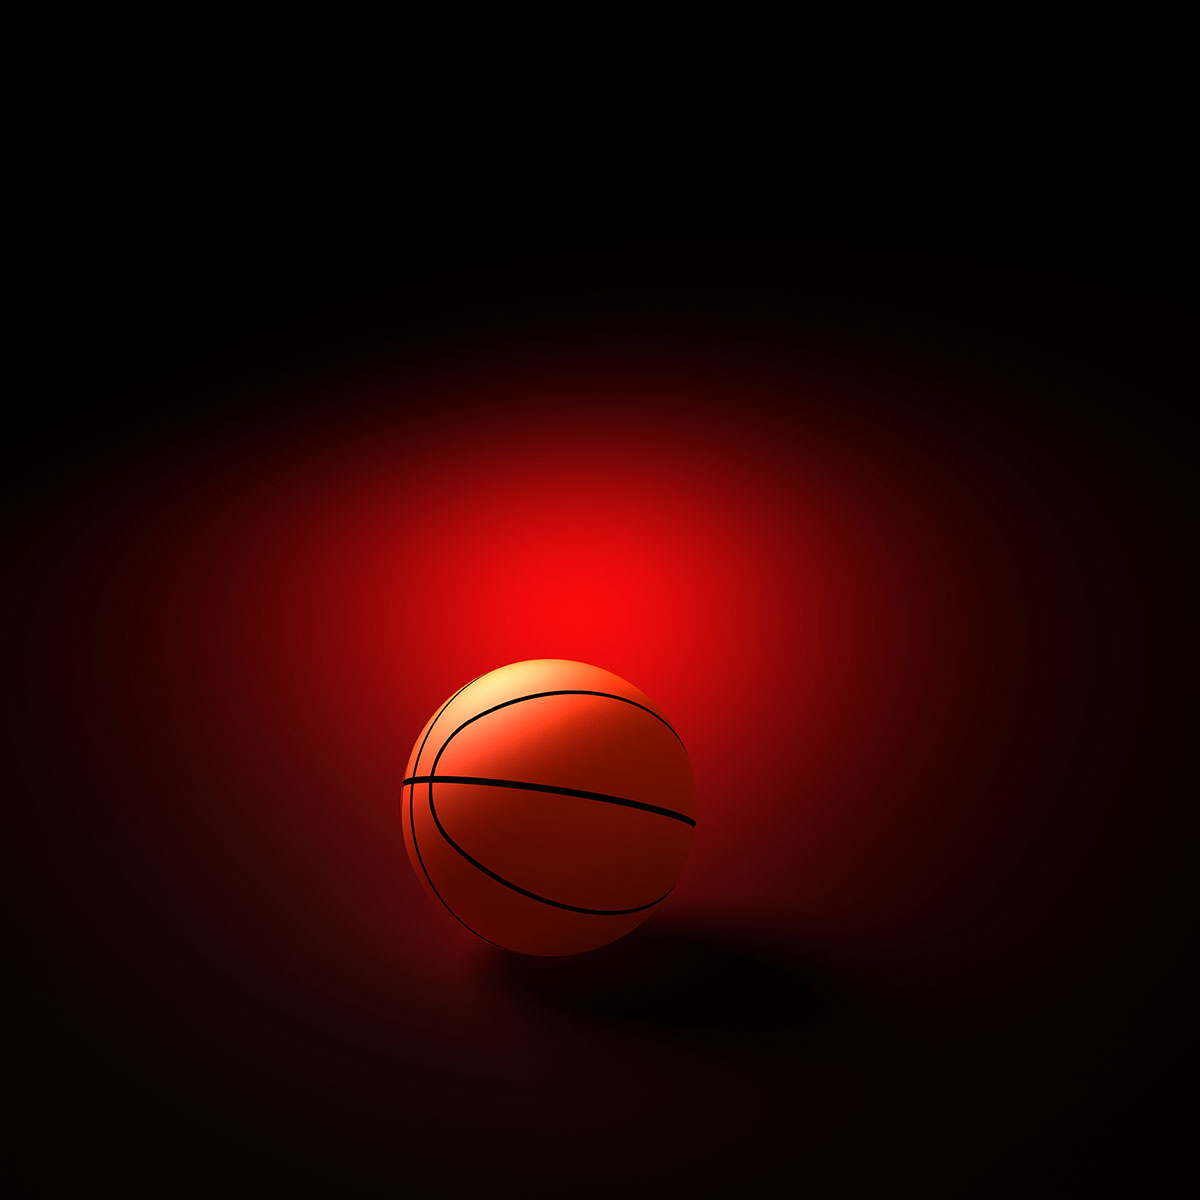 basketball on red